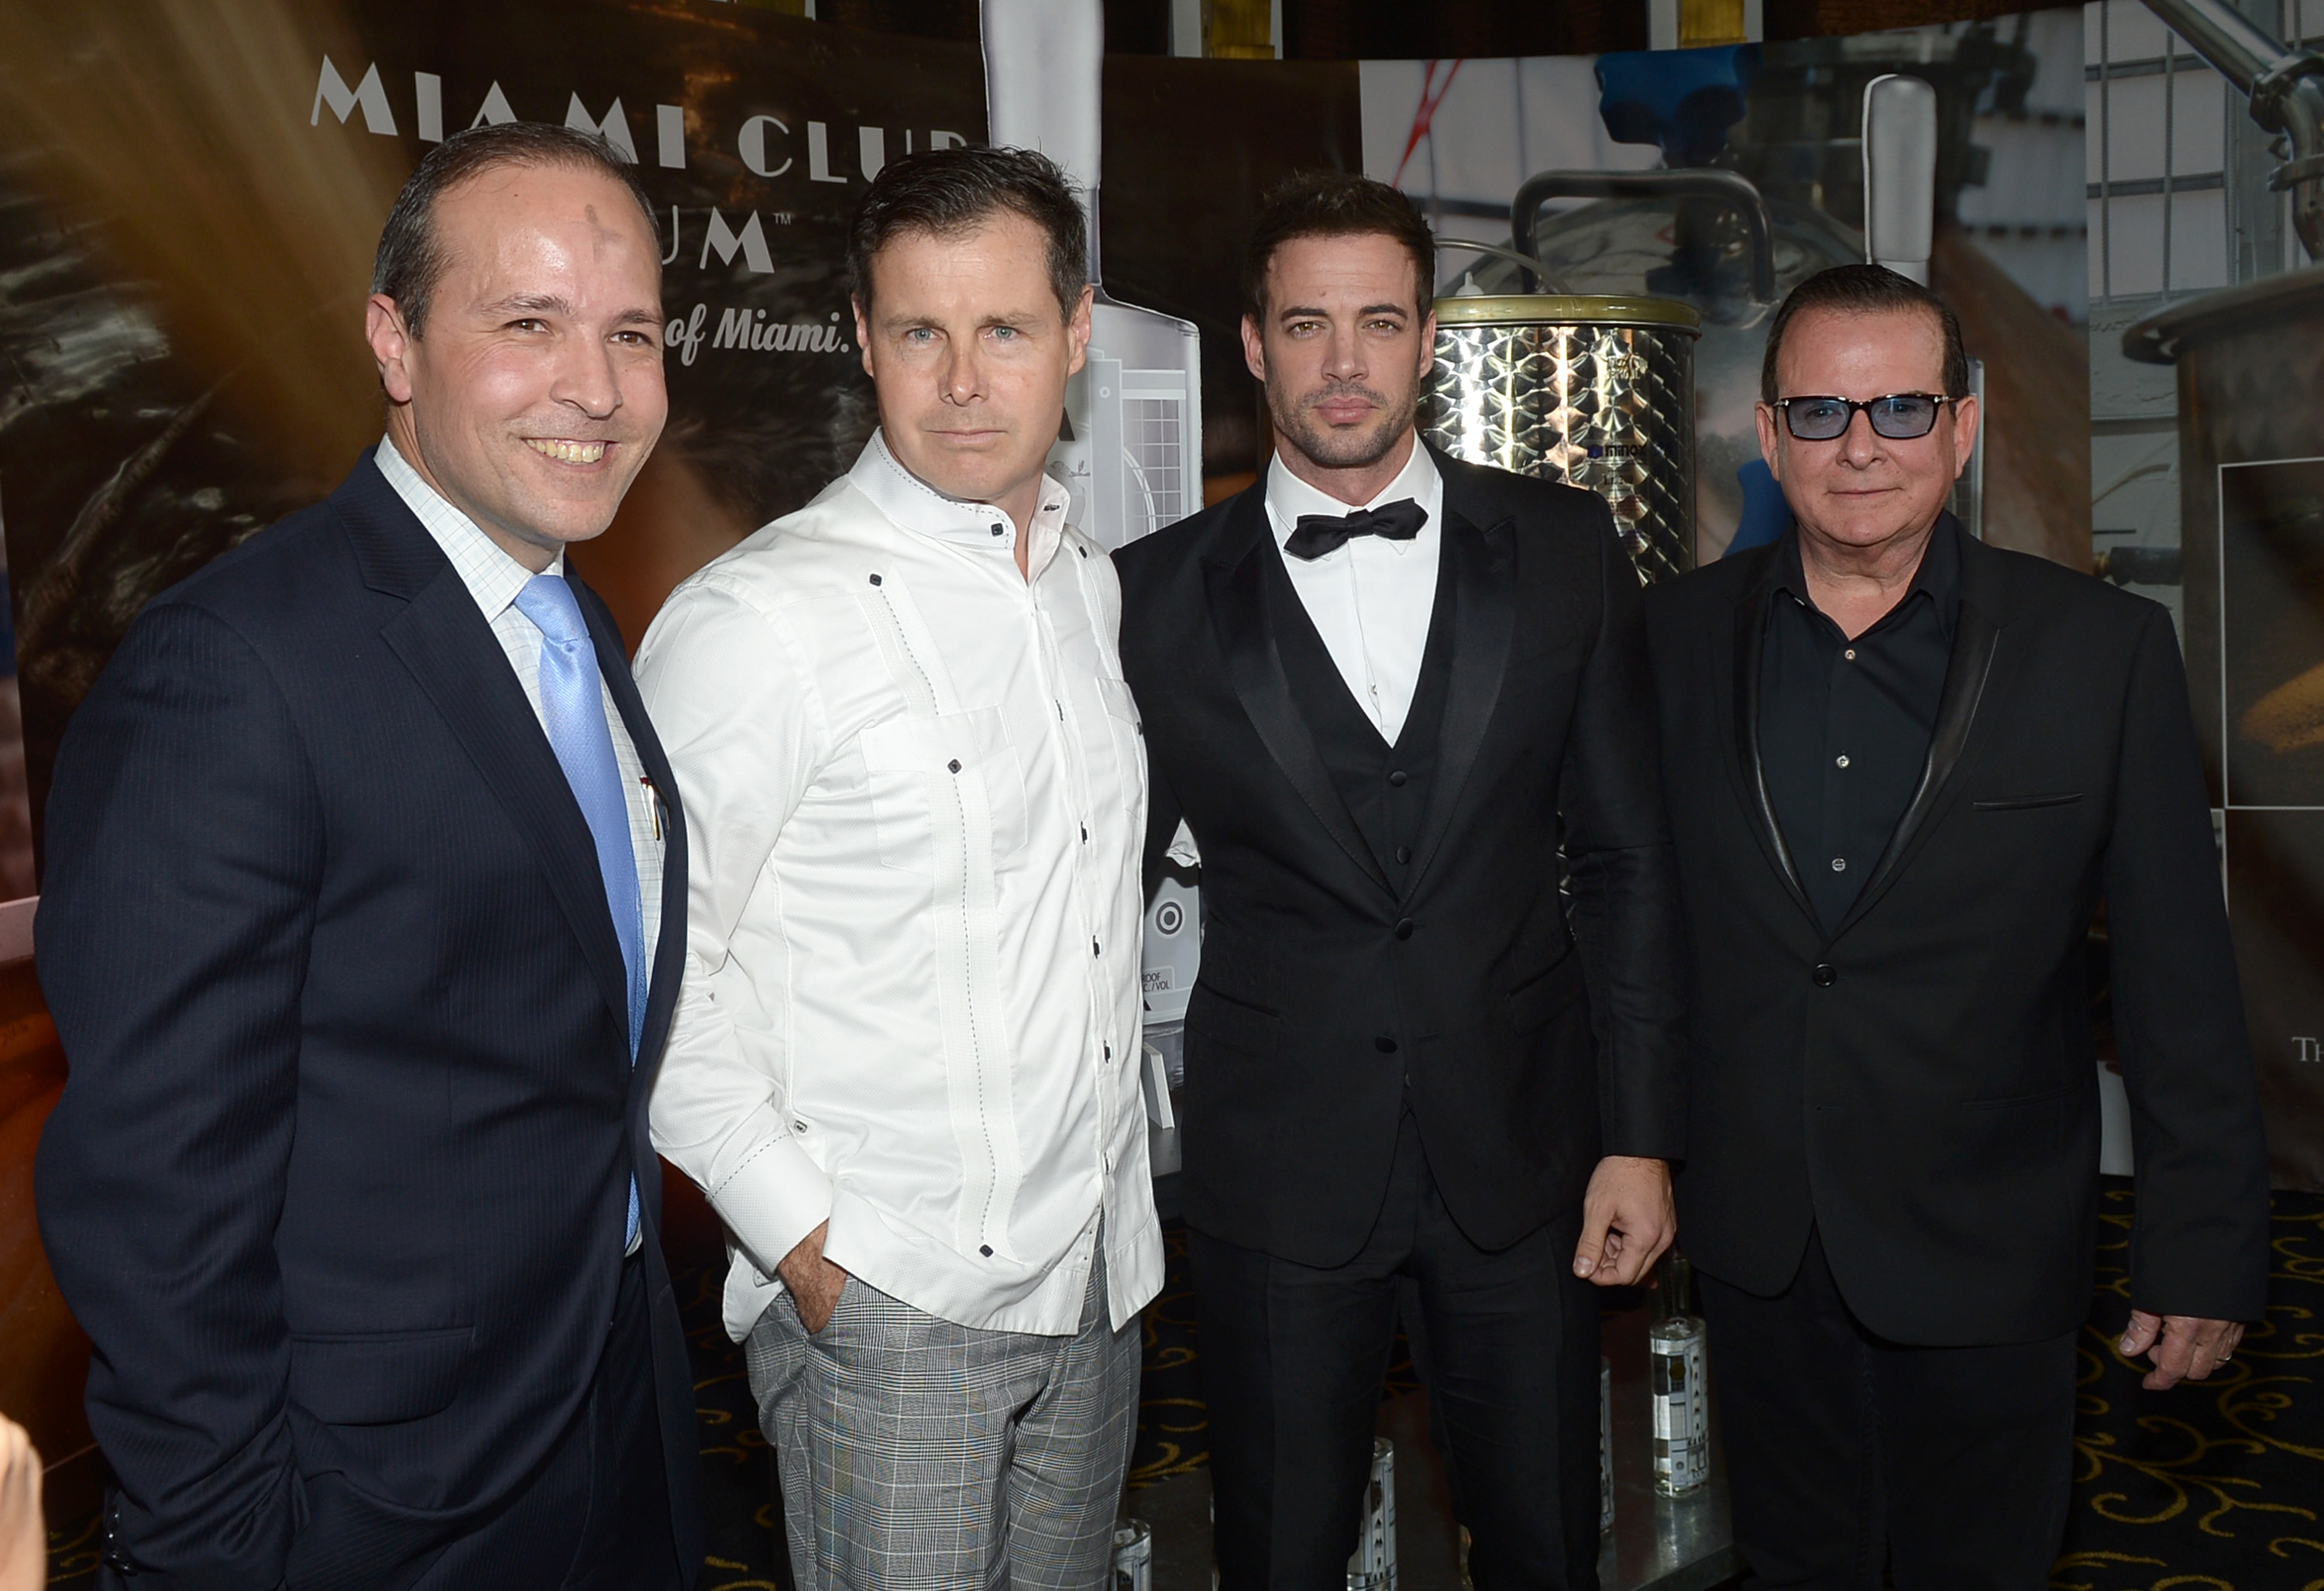 Miami Beach Fl February 18 Tomas Regalado Matt Malone William Levy And Hernan Echevarria Attend The Club Rum Official Partnership Launch With